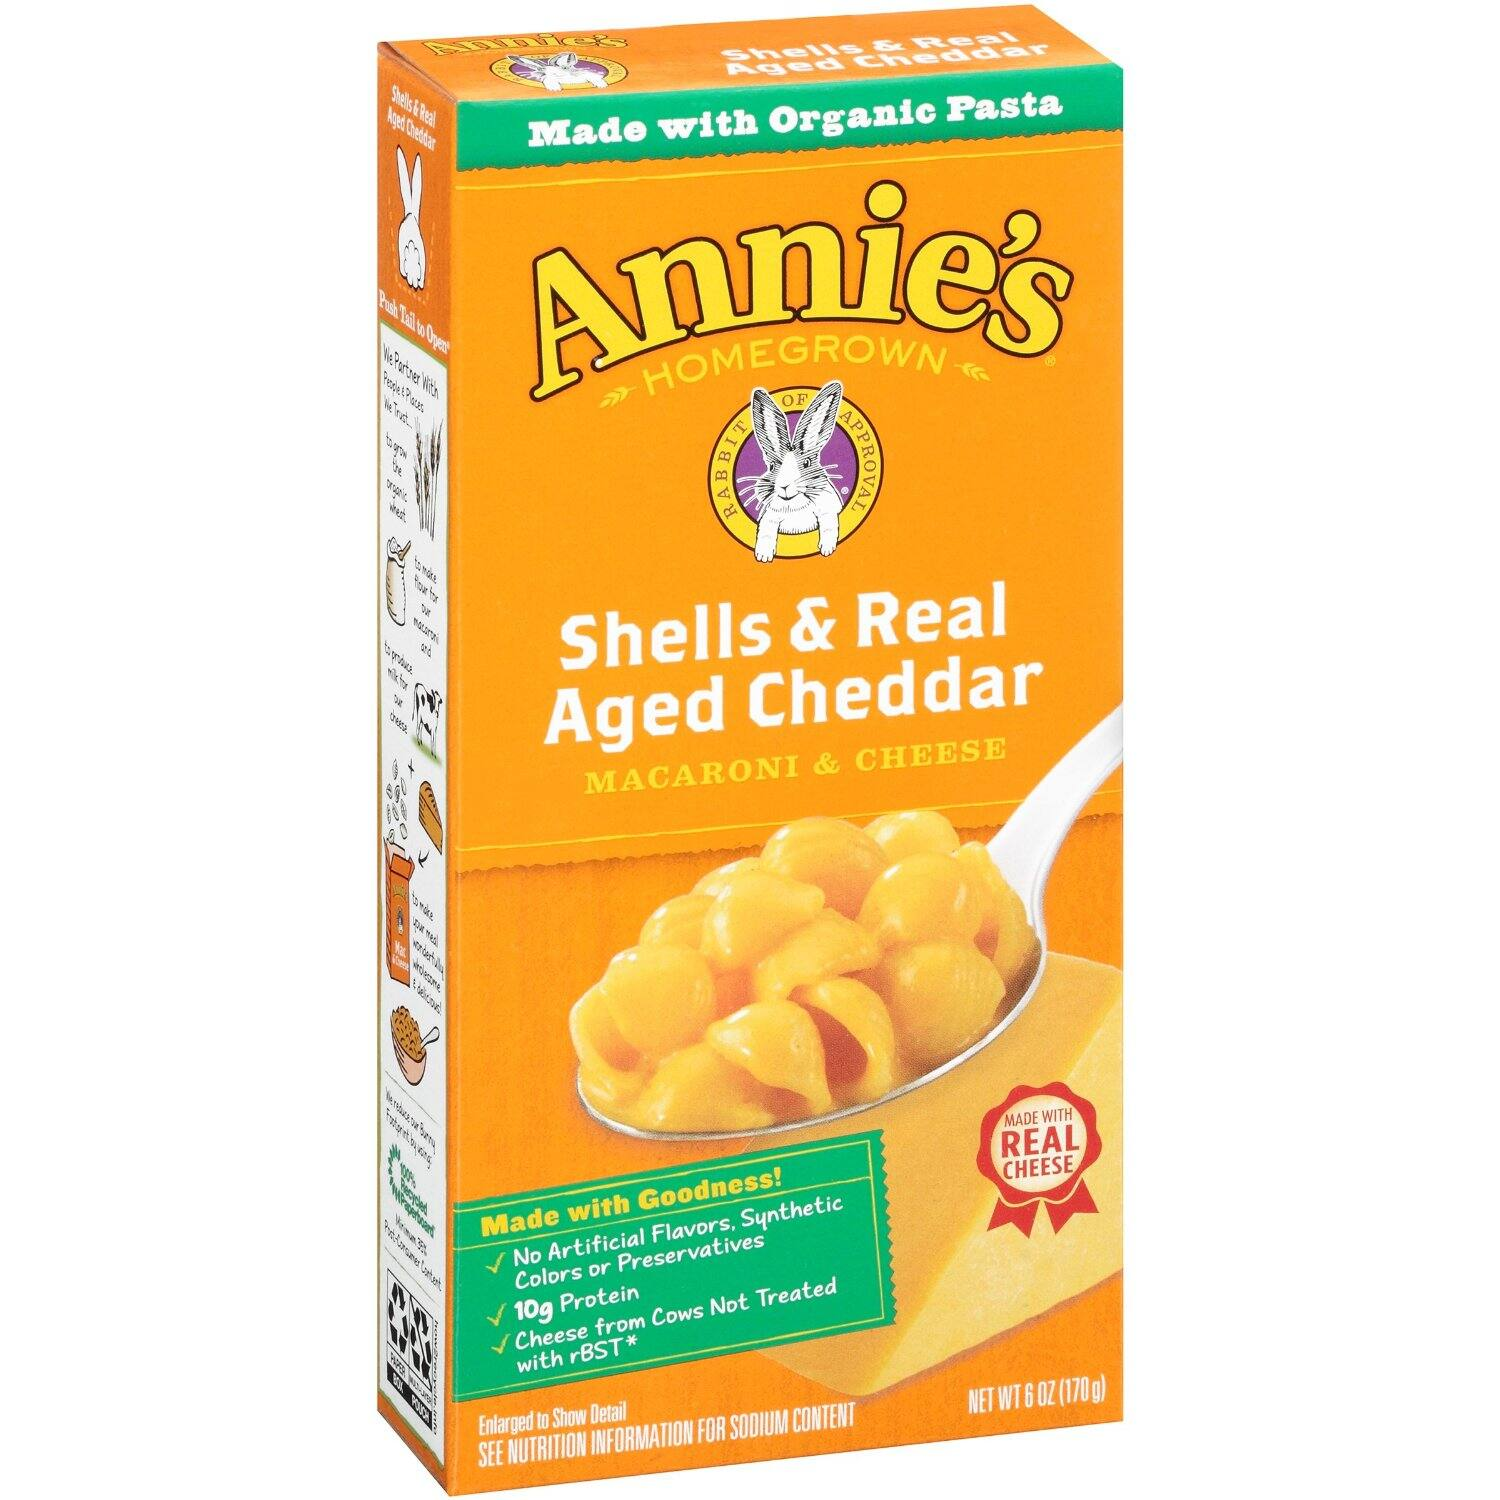 12-Pack Annie's Organic Shells & Real Aged Cheddar Macaroni & Cheese (6oz Box) $10.50 or less + free shipping